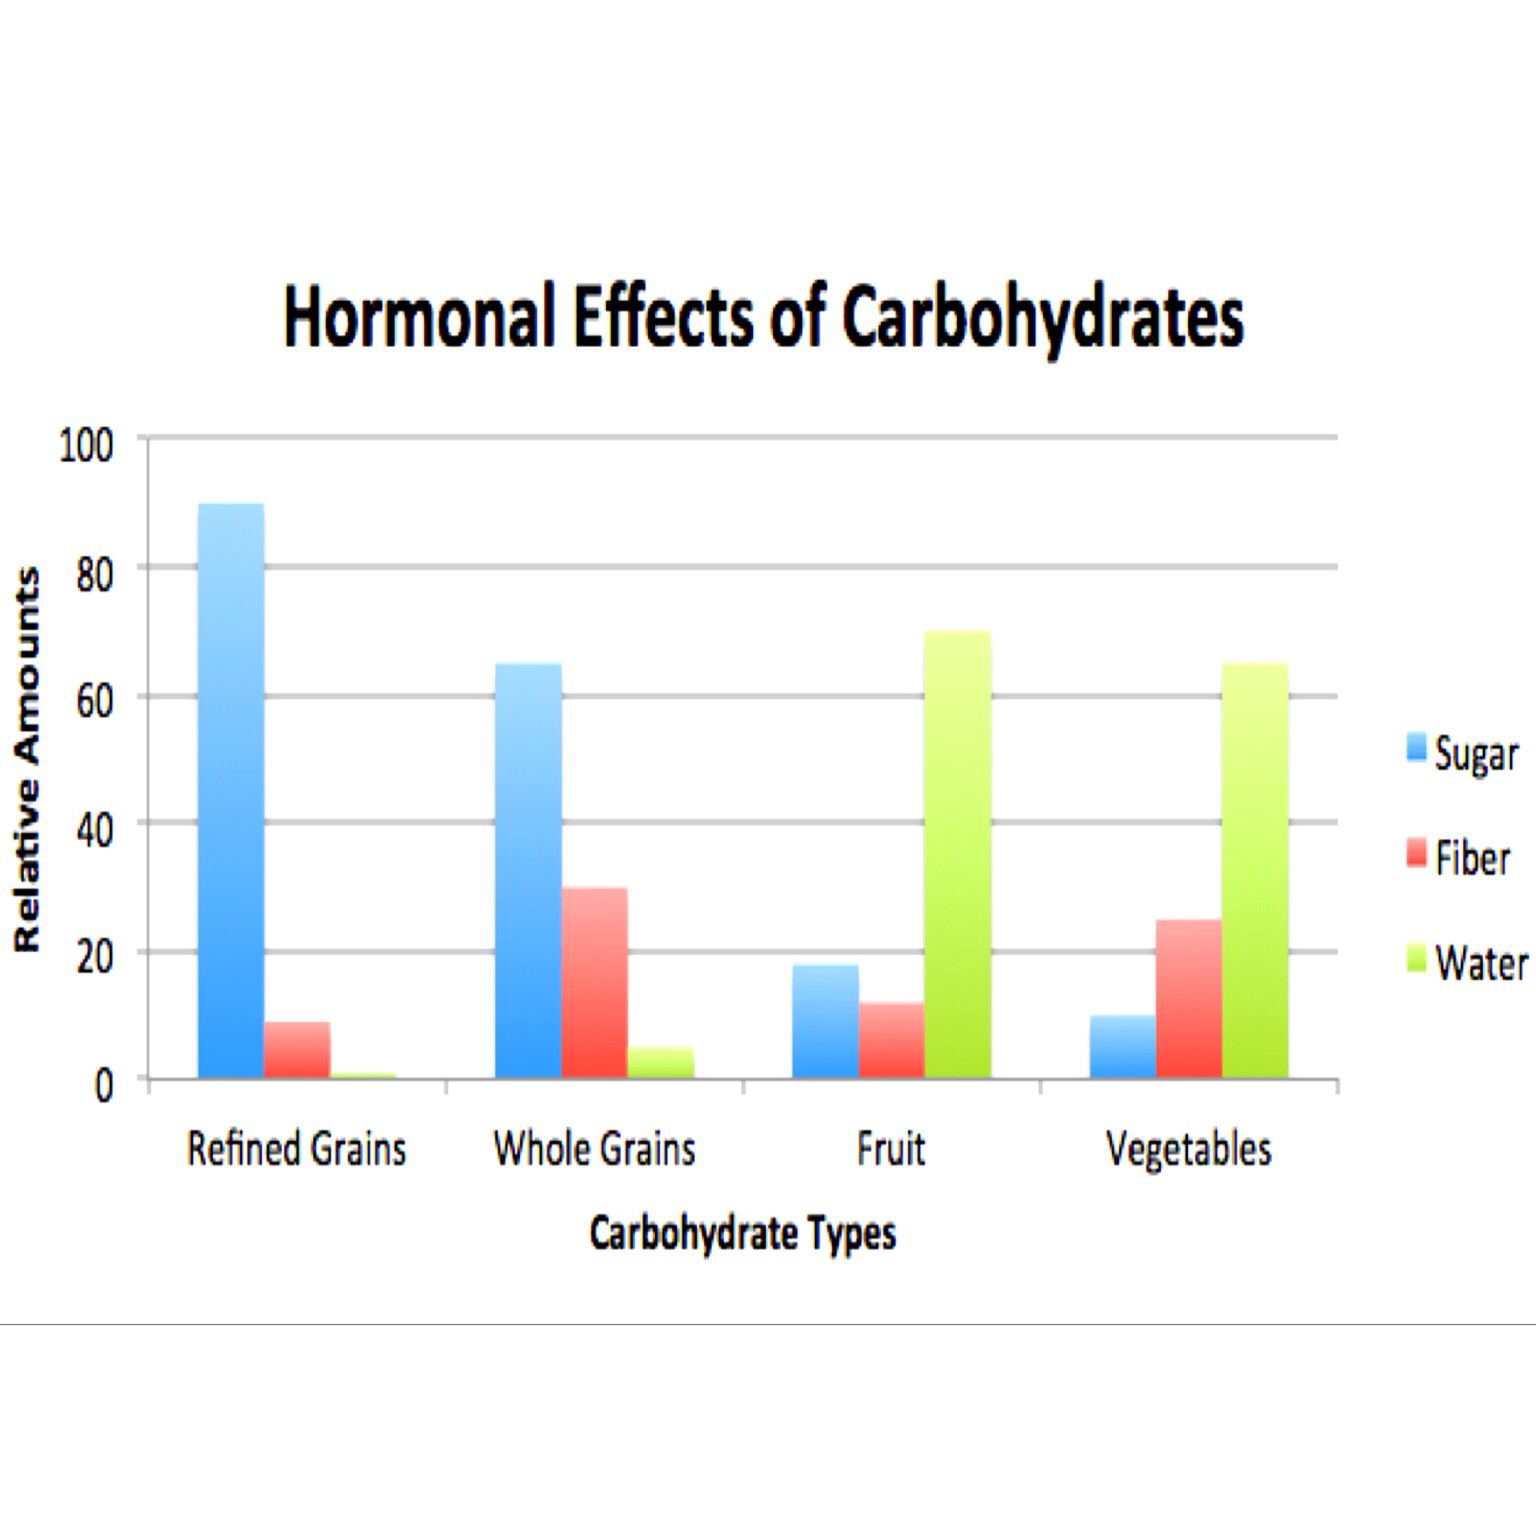 How Many Carbs Per Day Should I Eat To Lose Weight? ... Many ...